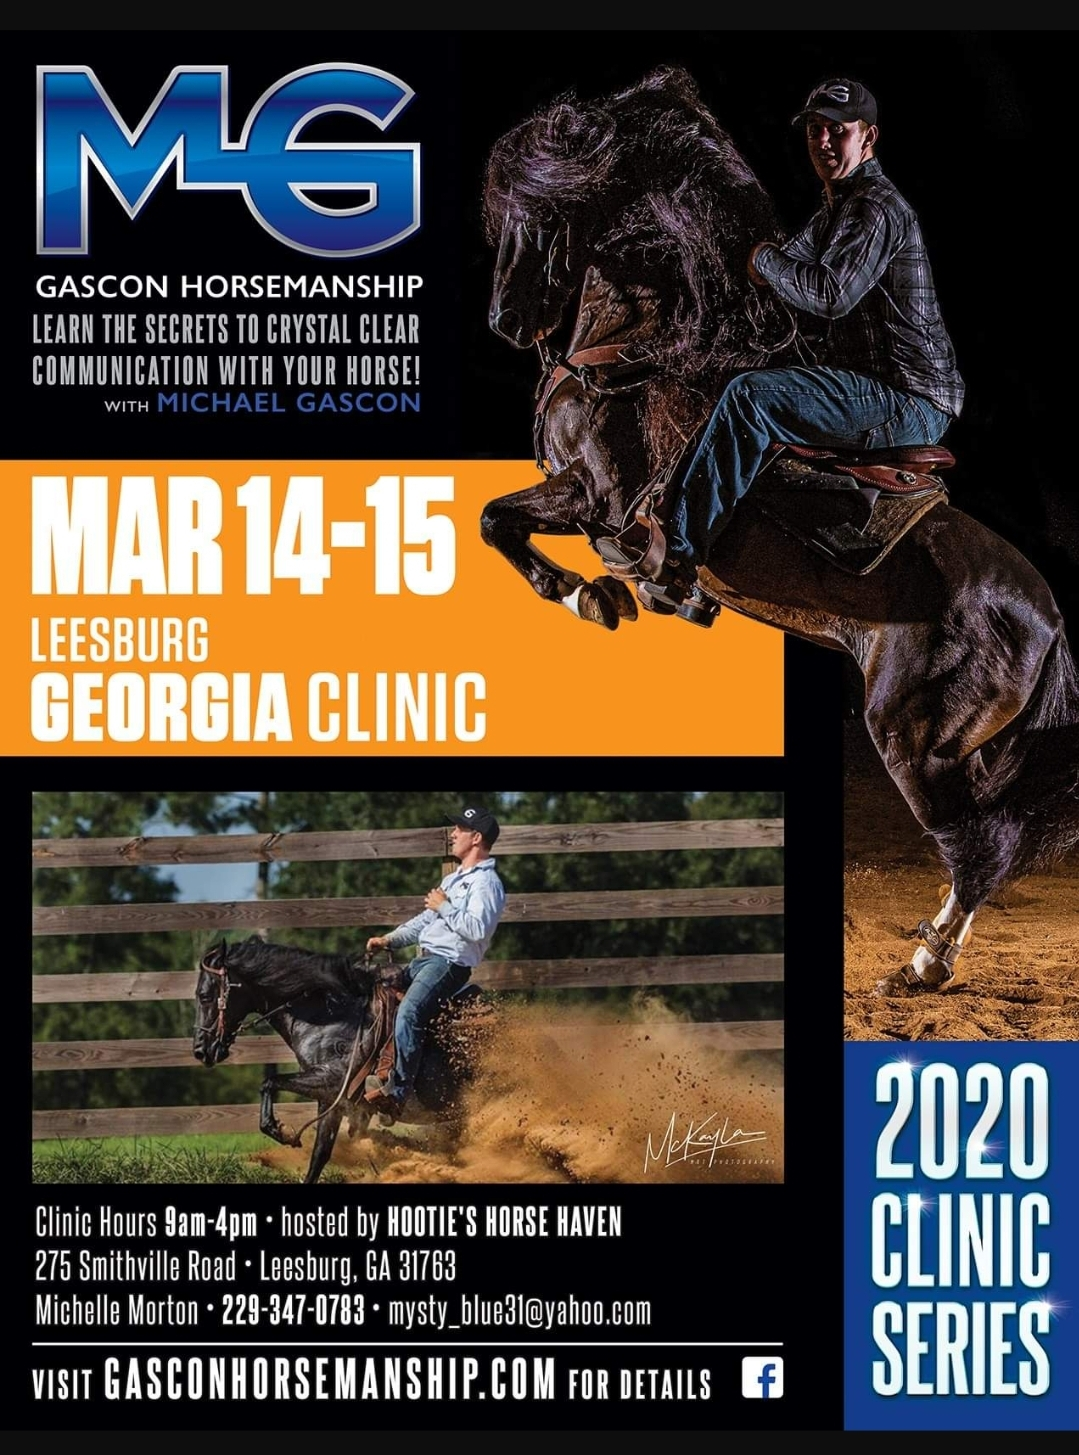 Hooties Horse Haven Equine Clinic with Michael Gascon